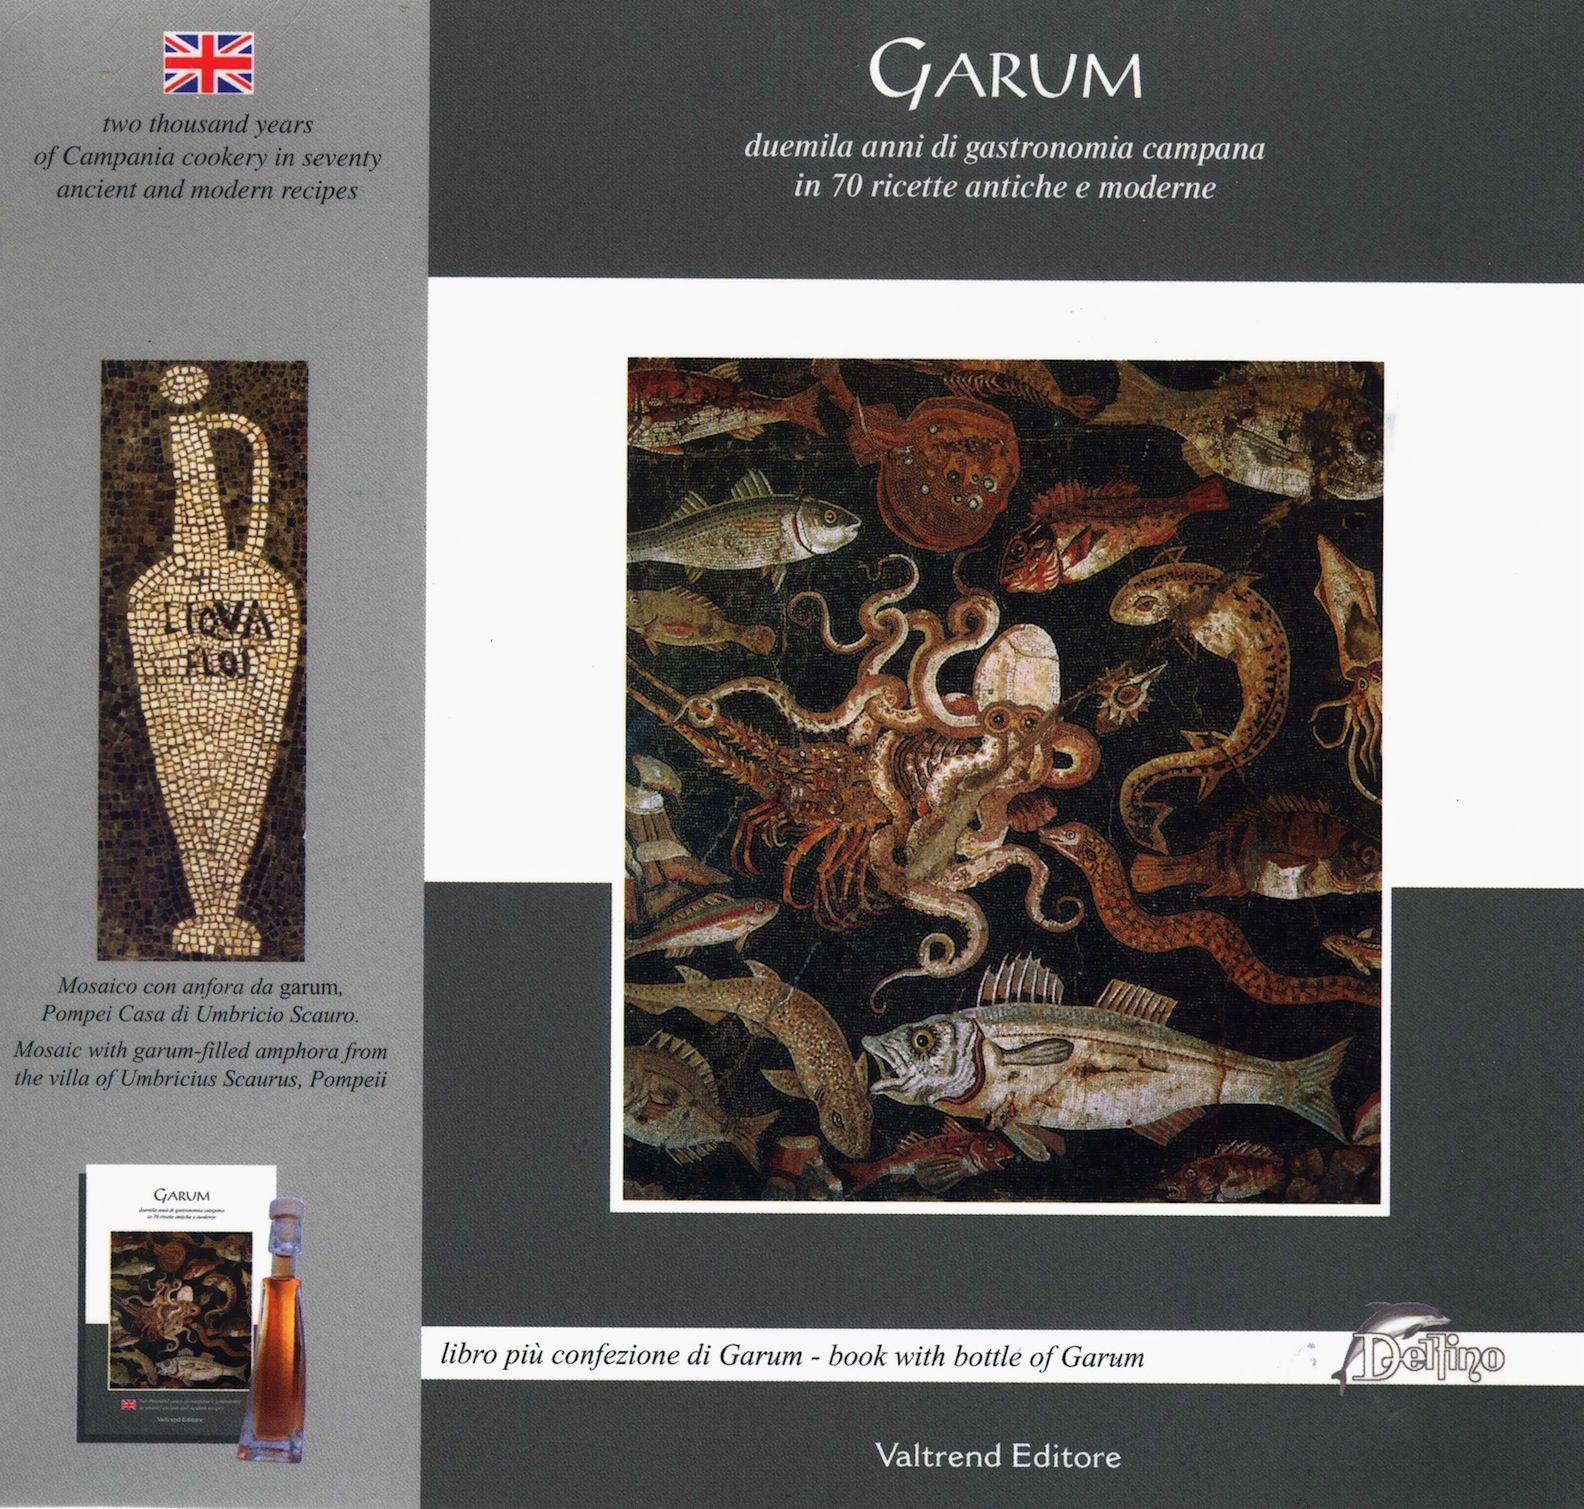 label of the book and bottle of Garum I bought in Bacoli near Naples. Sept 2013